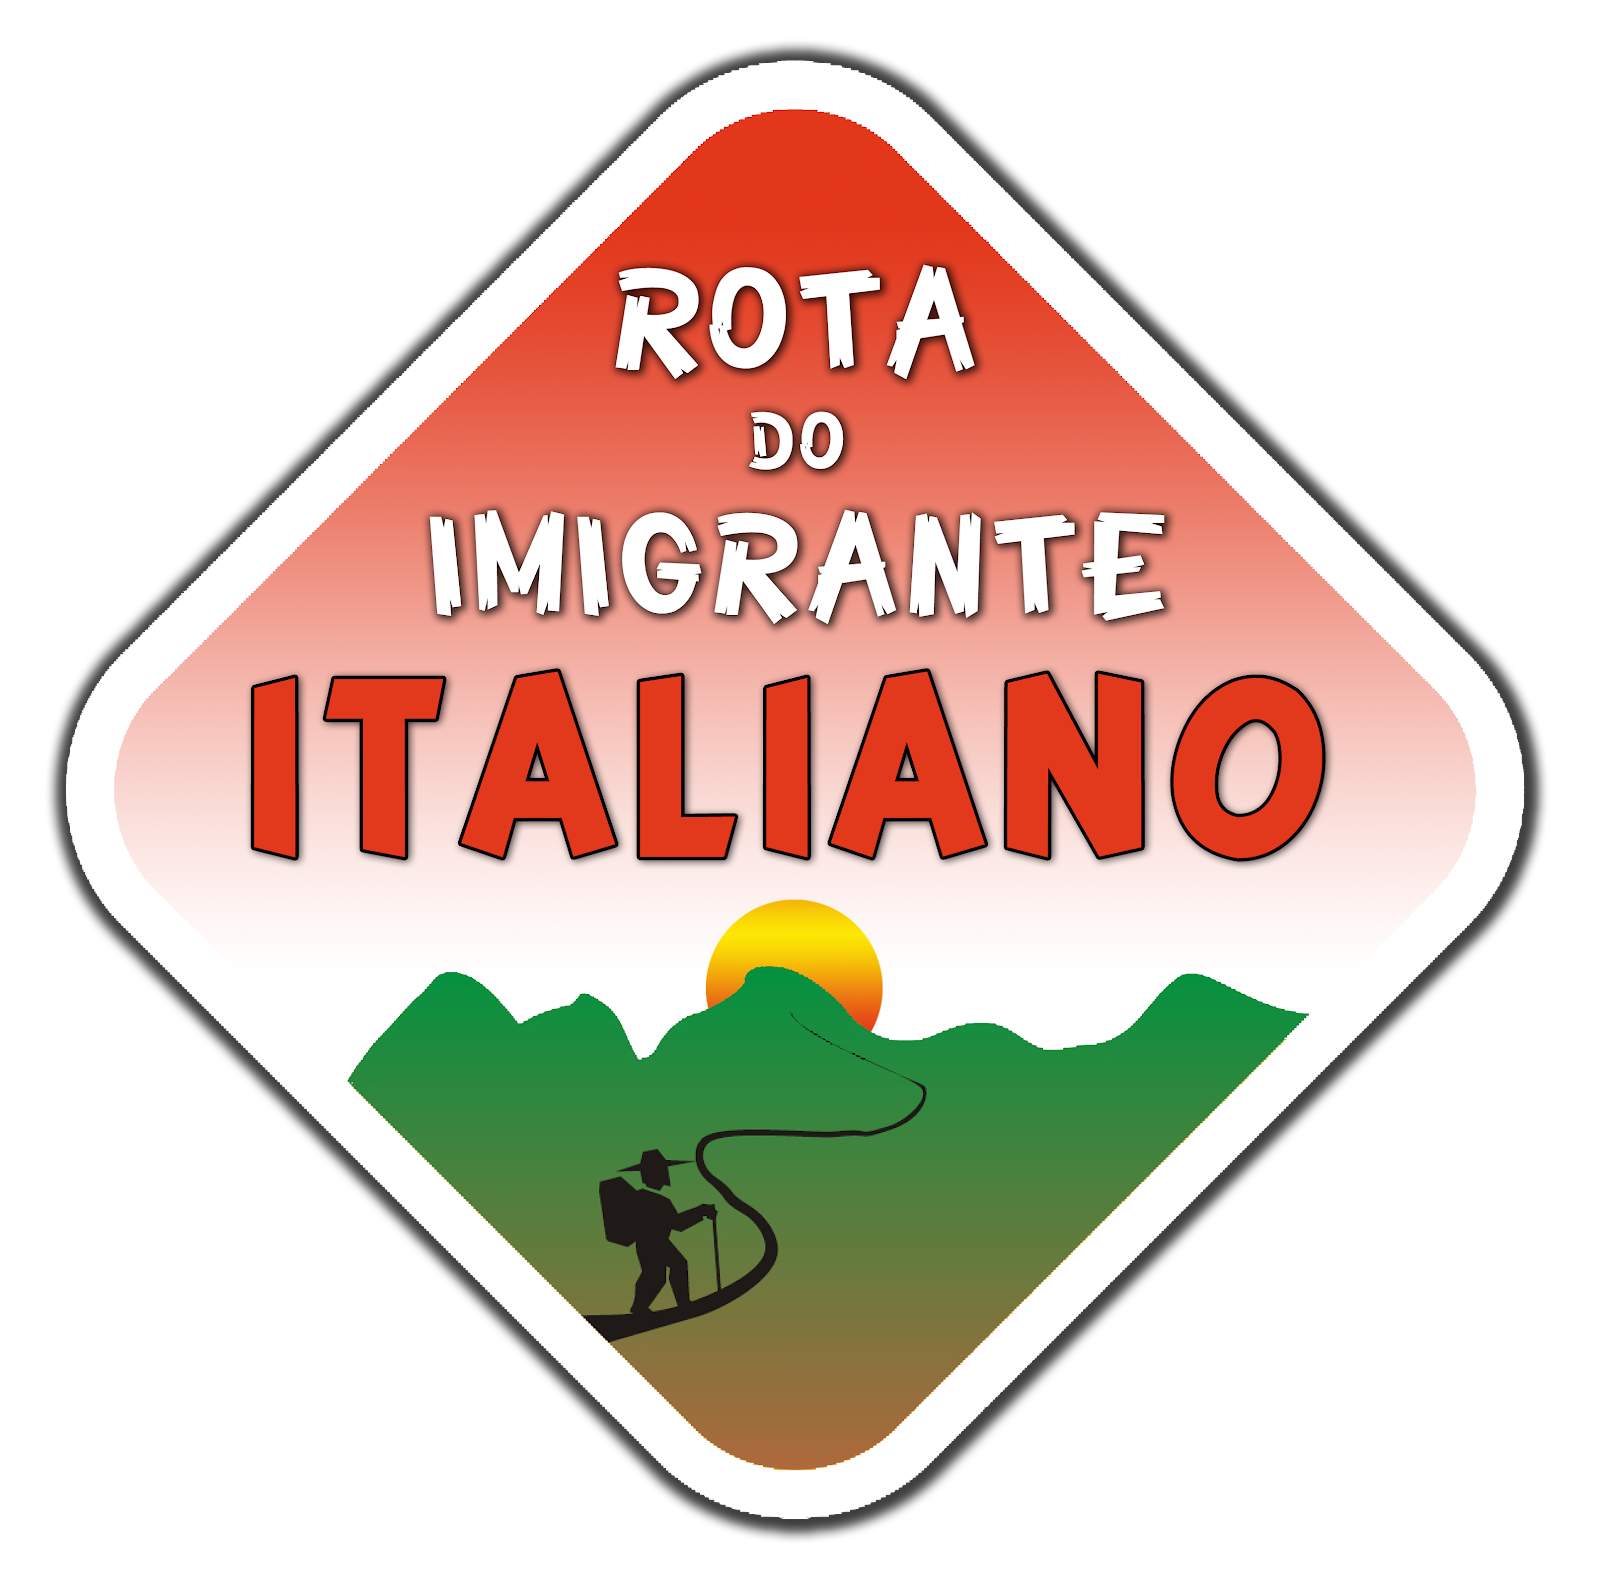 Rota do Imigrante Italiano